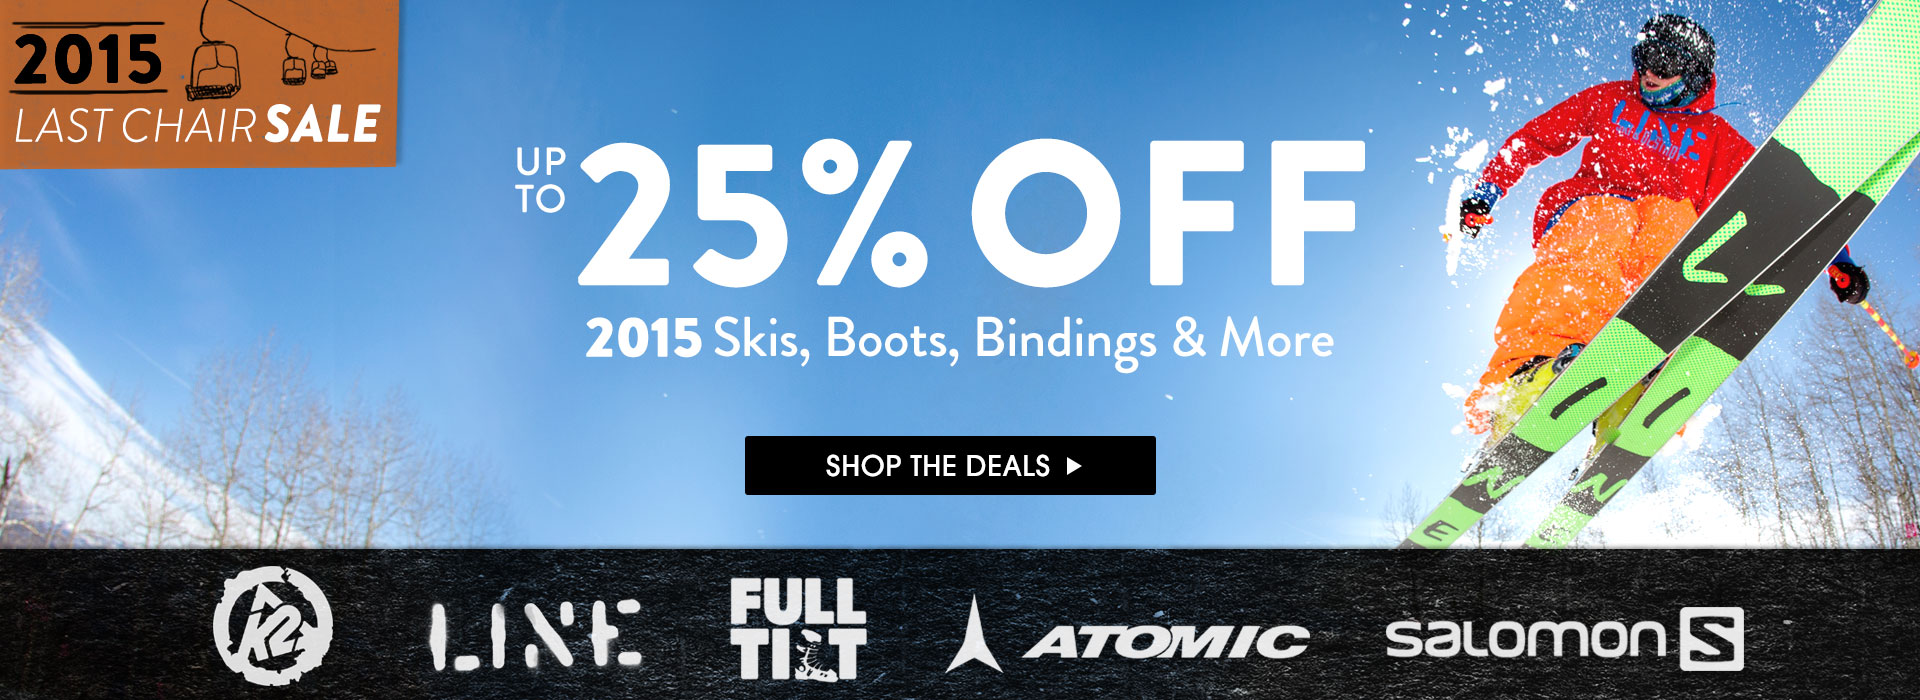 Last Chair Sale. Up To 25% Off 2015 Ski Gear. Shop Now.